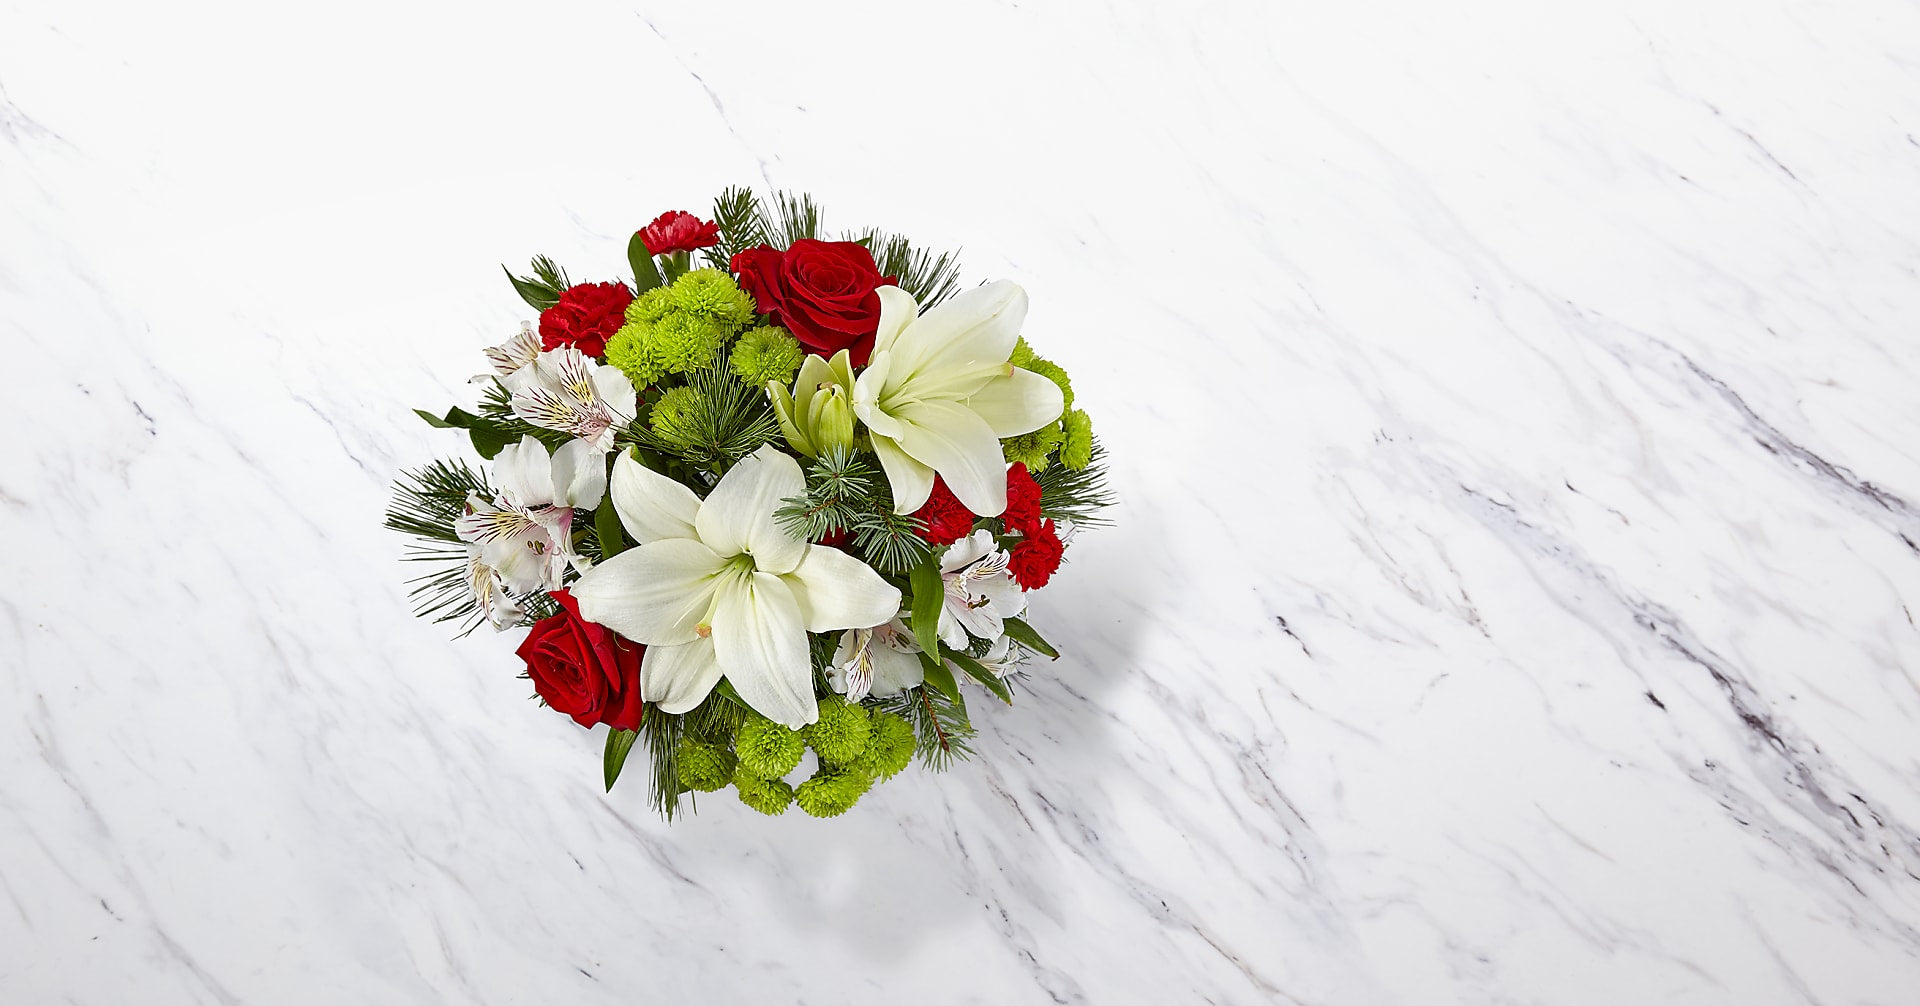 Christmas Spirit™ Bouquet - Image 2 Of 4